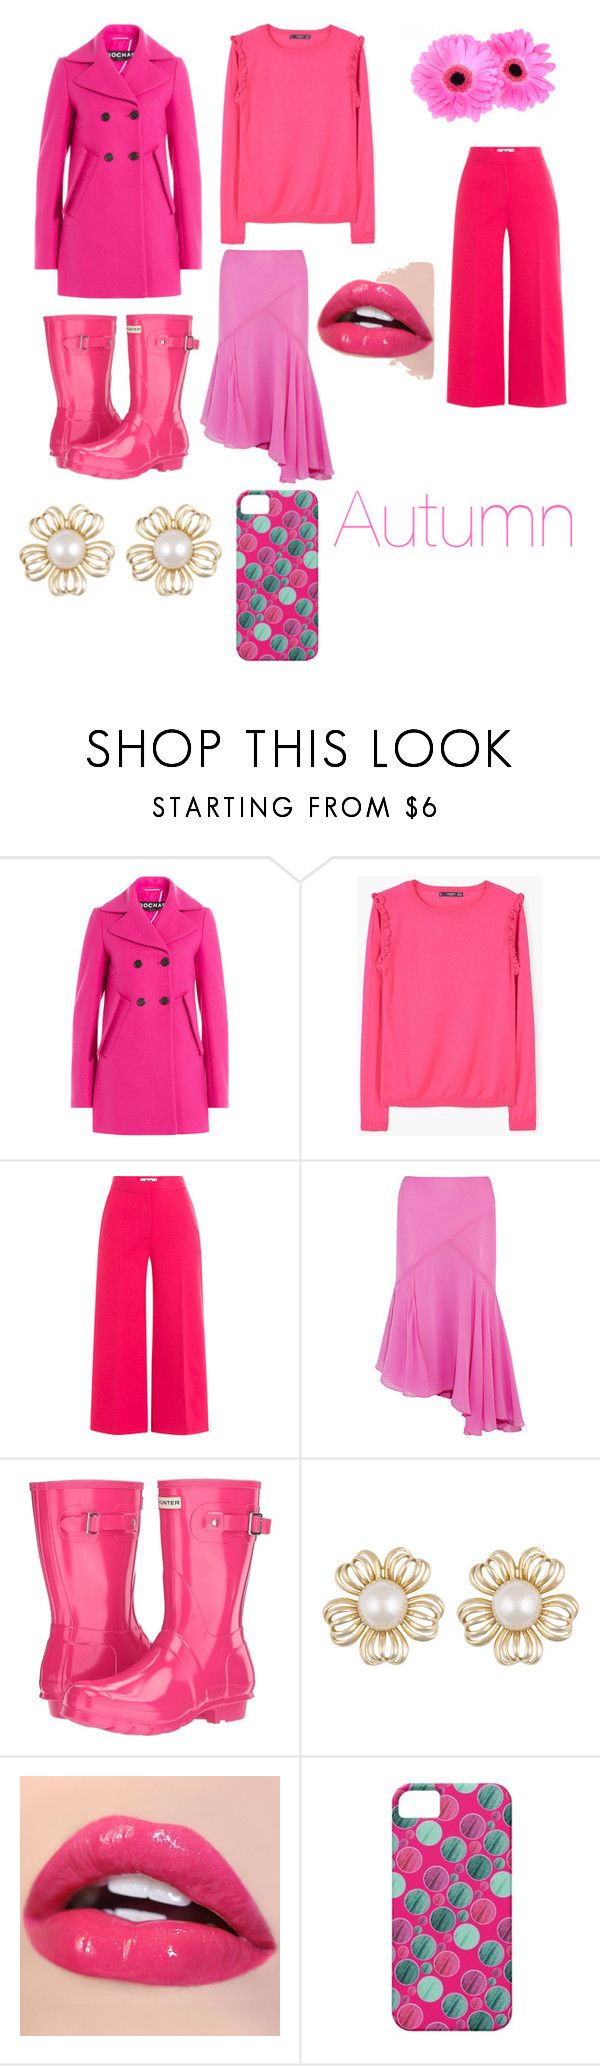 """Yearly Pink Collection: Autumn"" by moonlightshine1st ❤ liked on Polyvore featuring Rochas, MANGO, MSGM, Topshop Unique and Hunter"